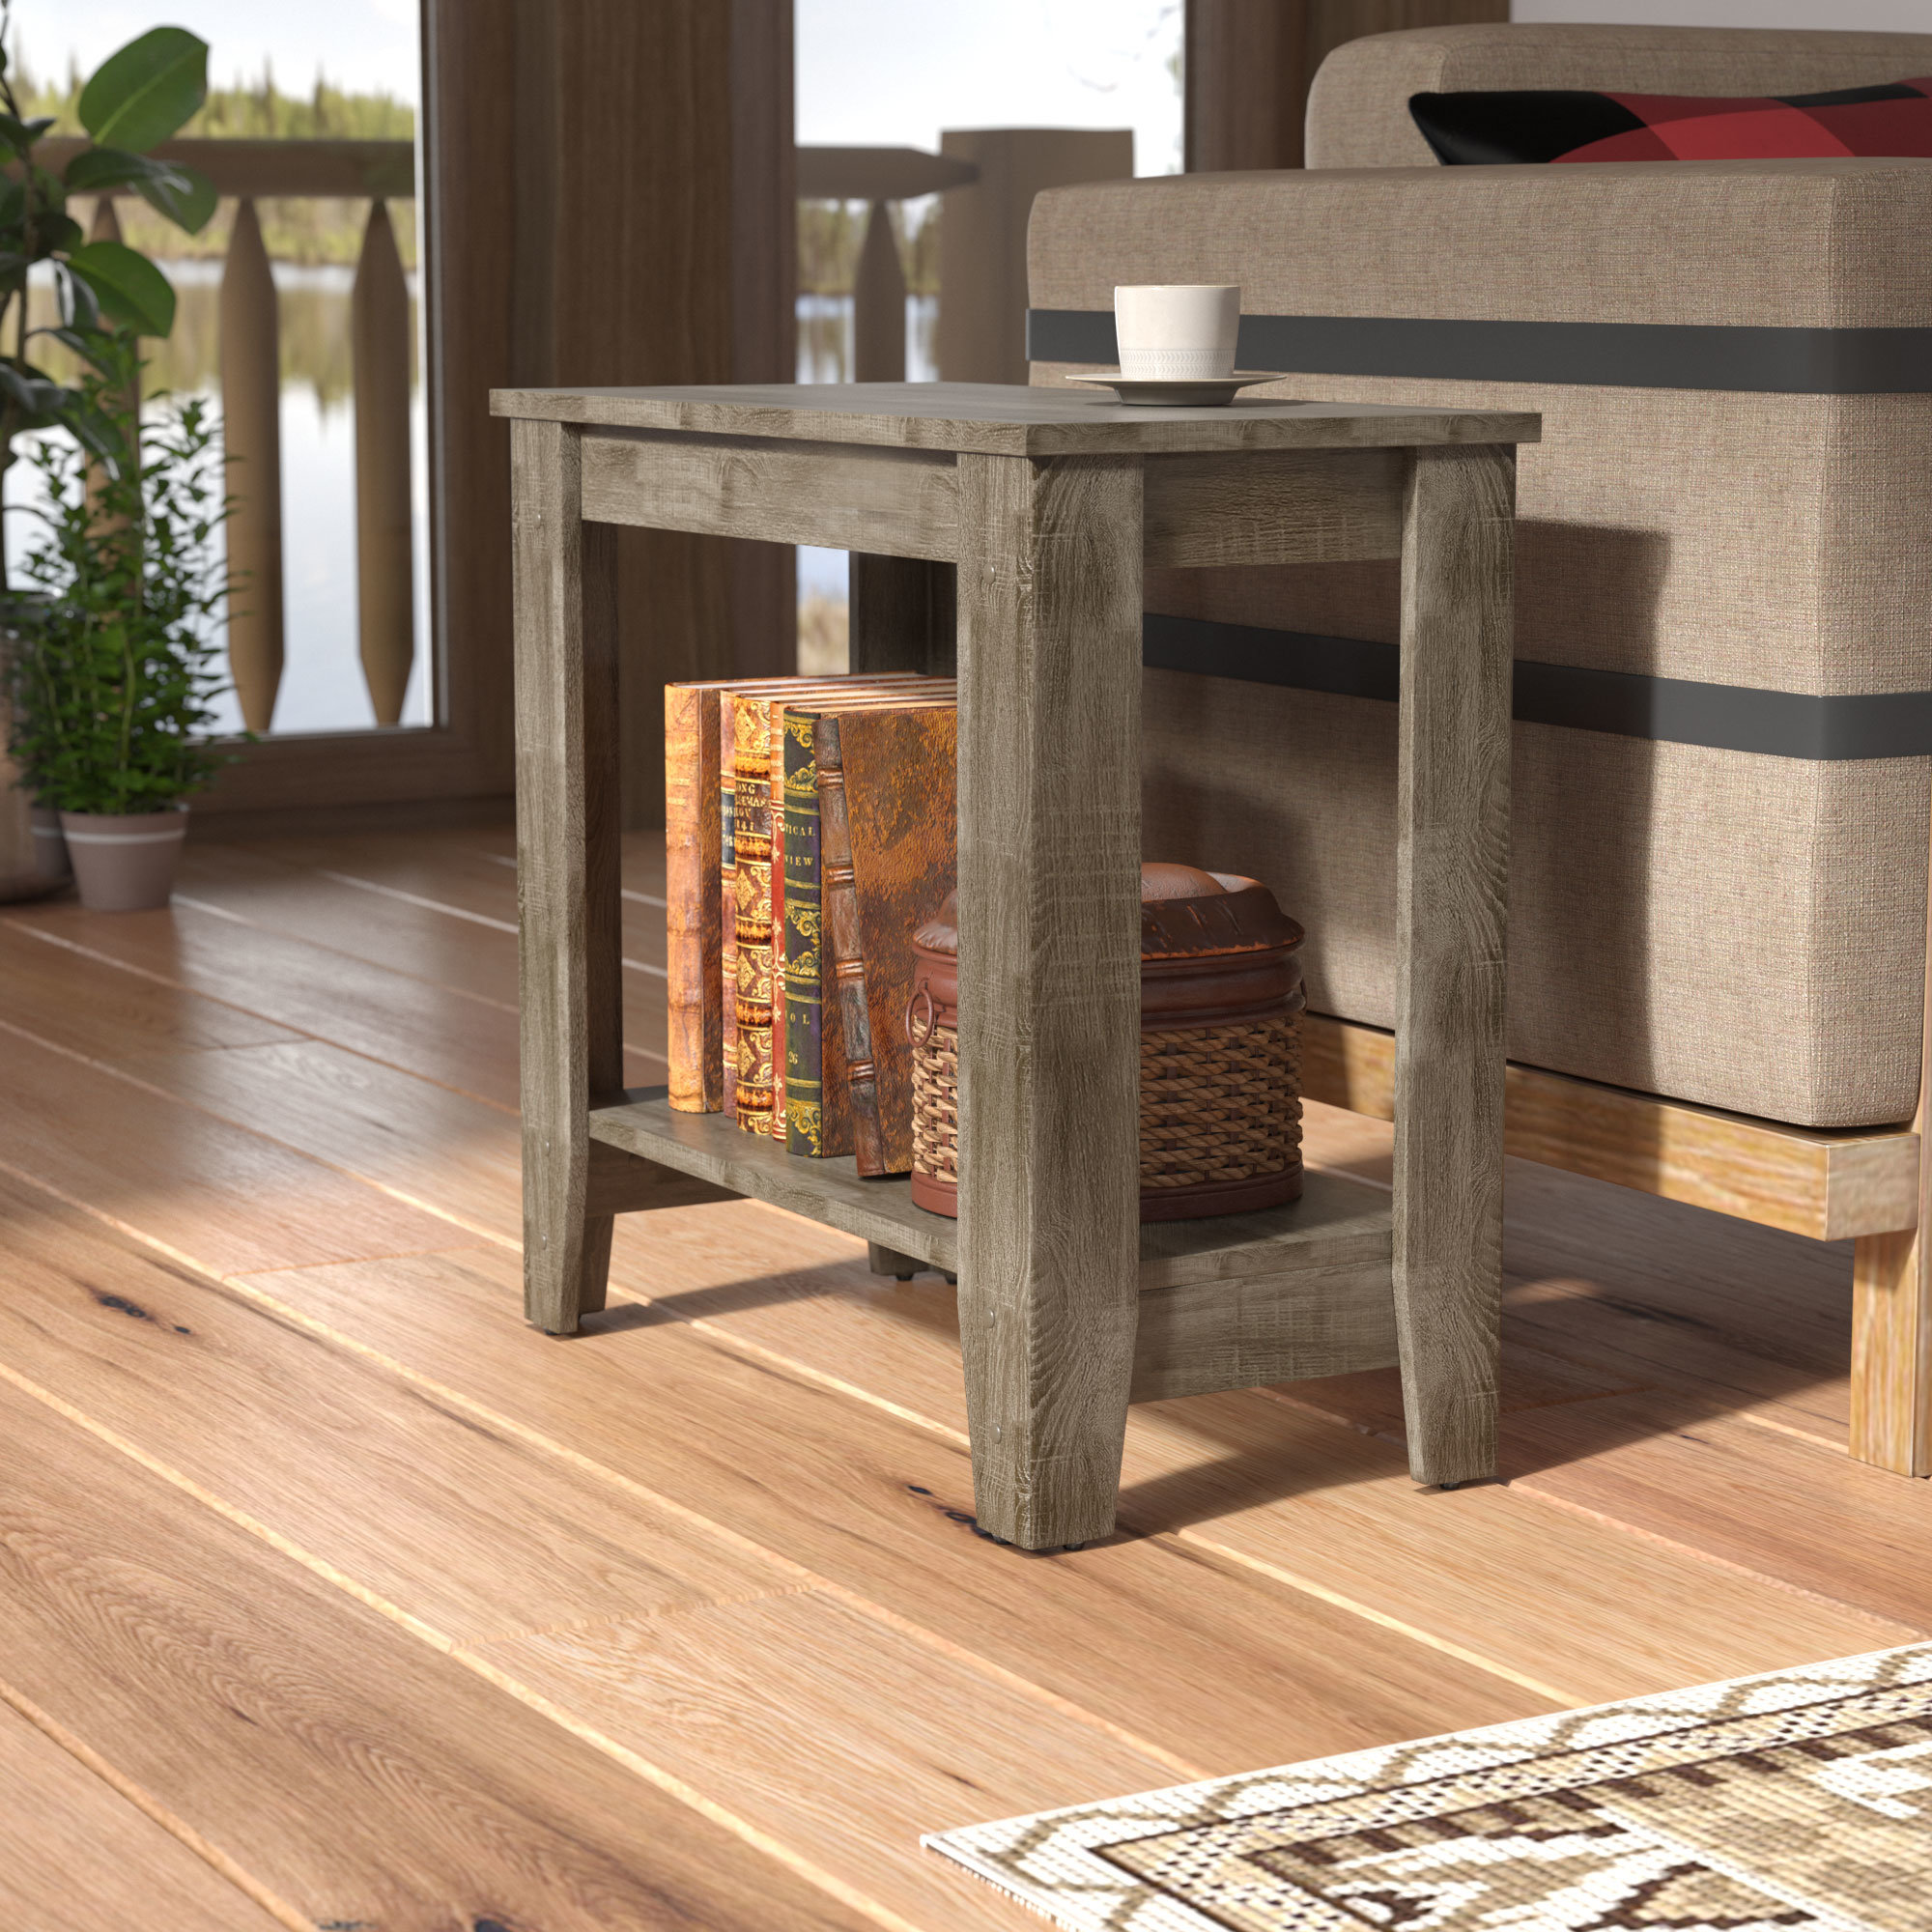 balderston end table reviews birch lane room essentials stacking accent hampton bay patio set glass coffee tables toronto tipton round furniture mississauga mosaic dining and